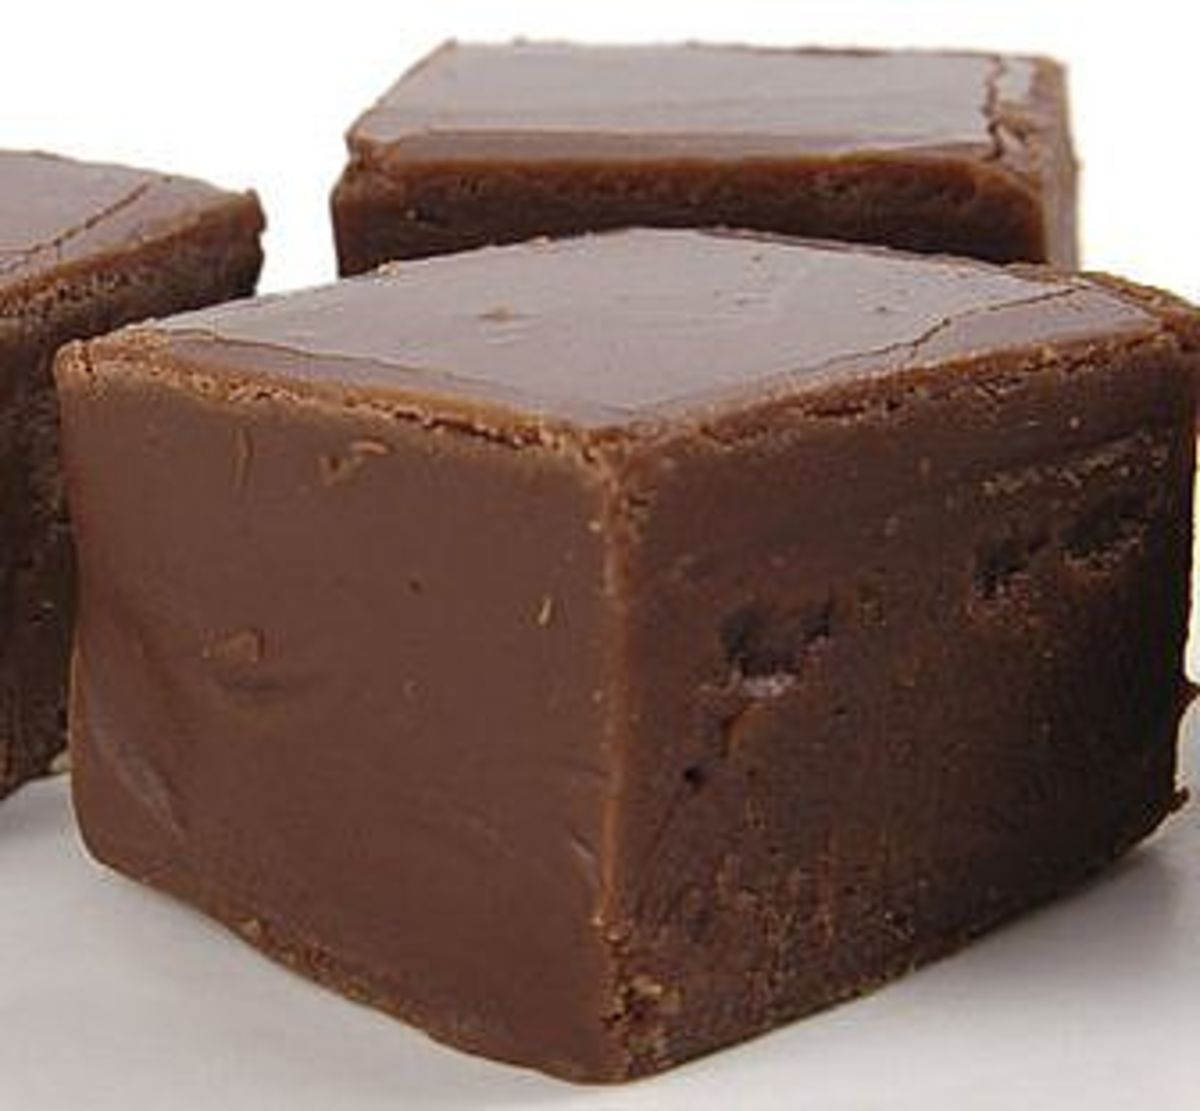 Here's a quick and easy way to make fudge that everyone will enjoy.